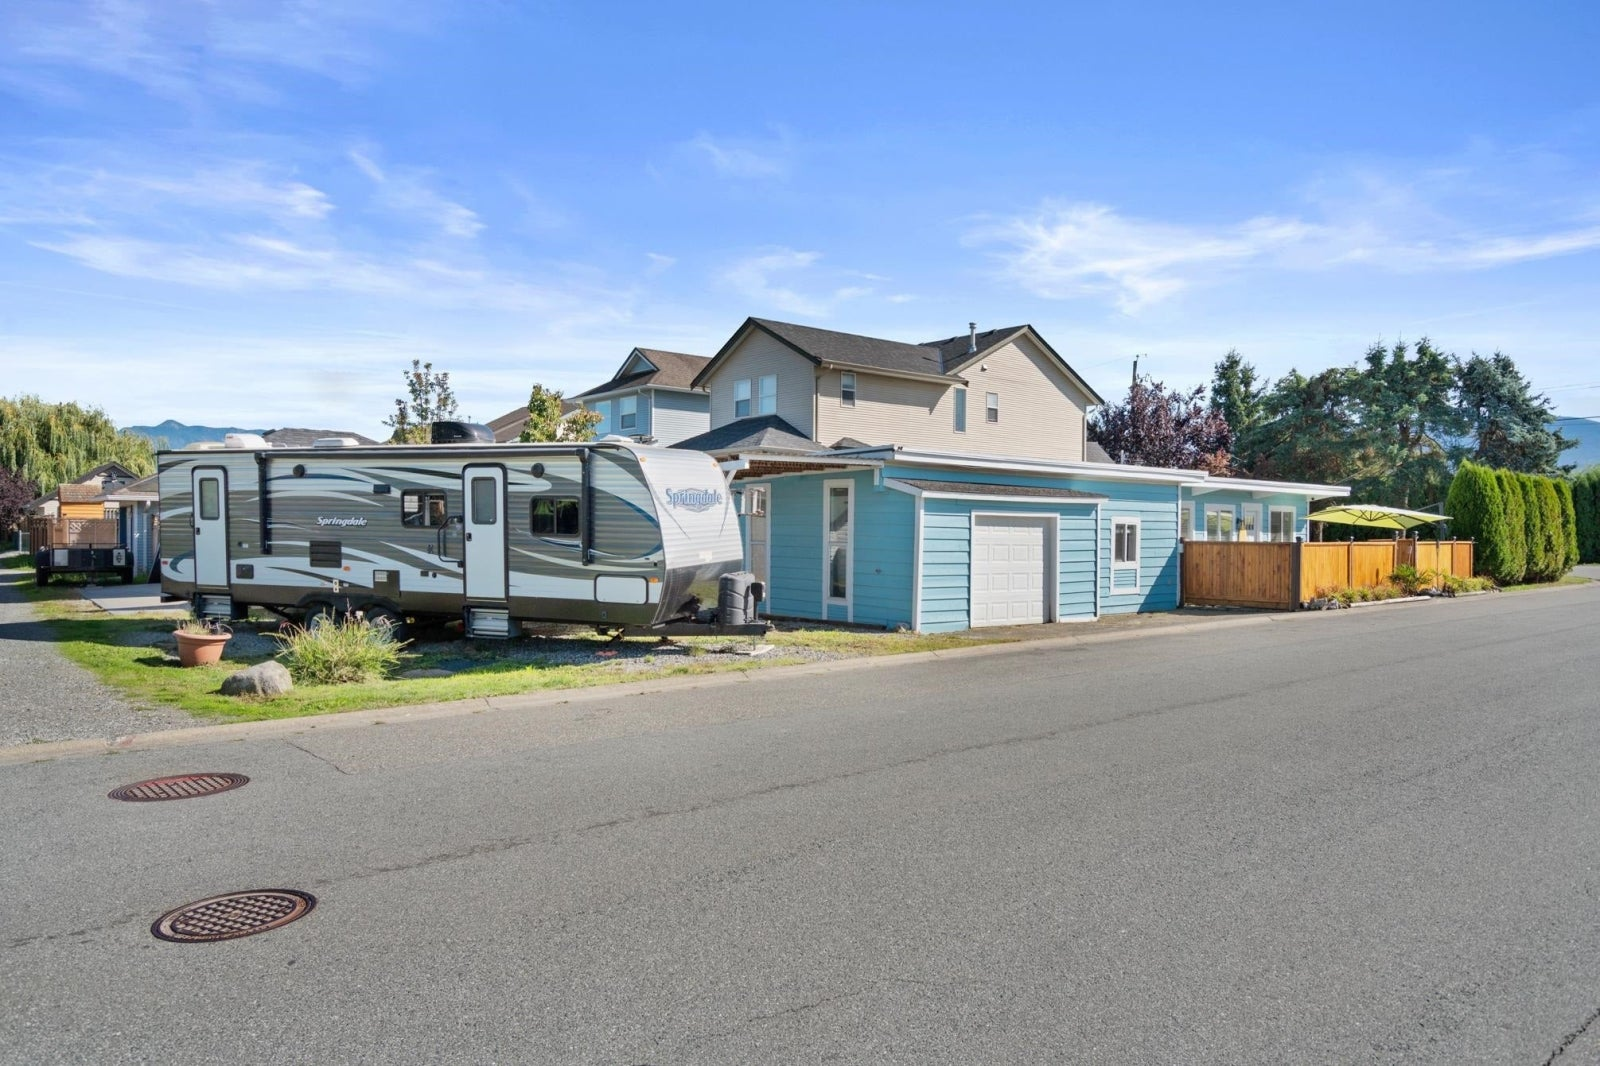 34705 4TH AVENUE - Abbotsford East House/Single Family for sale, 3 Bedrooms (R2620137) #31